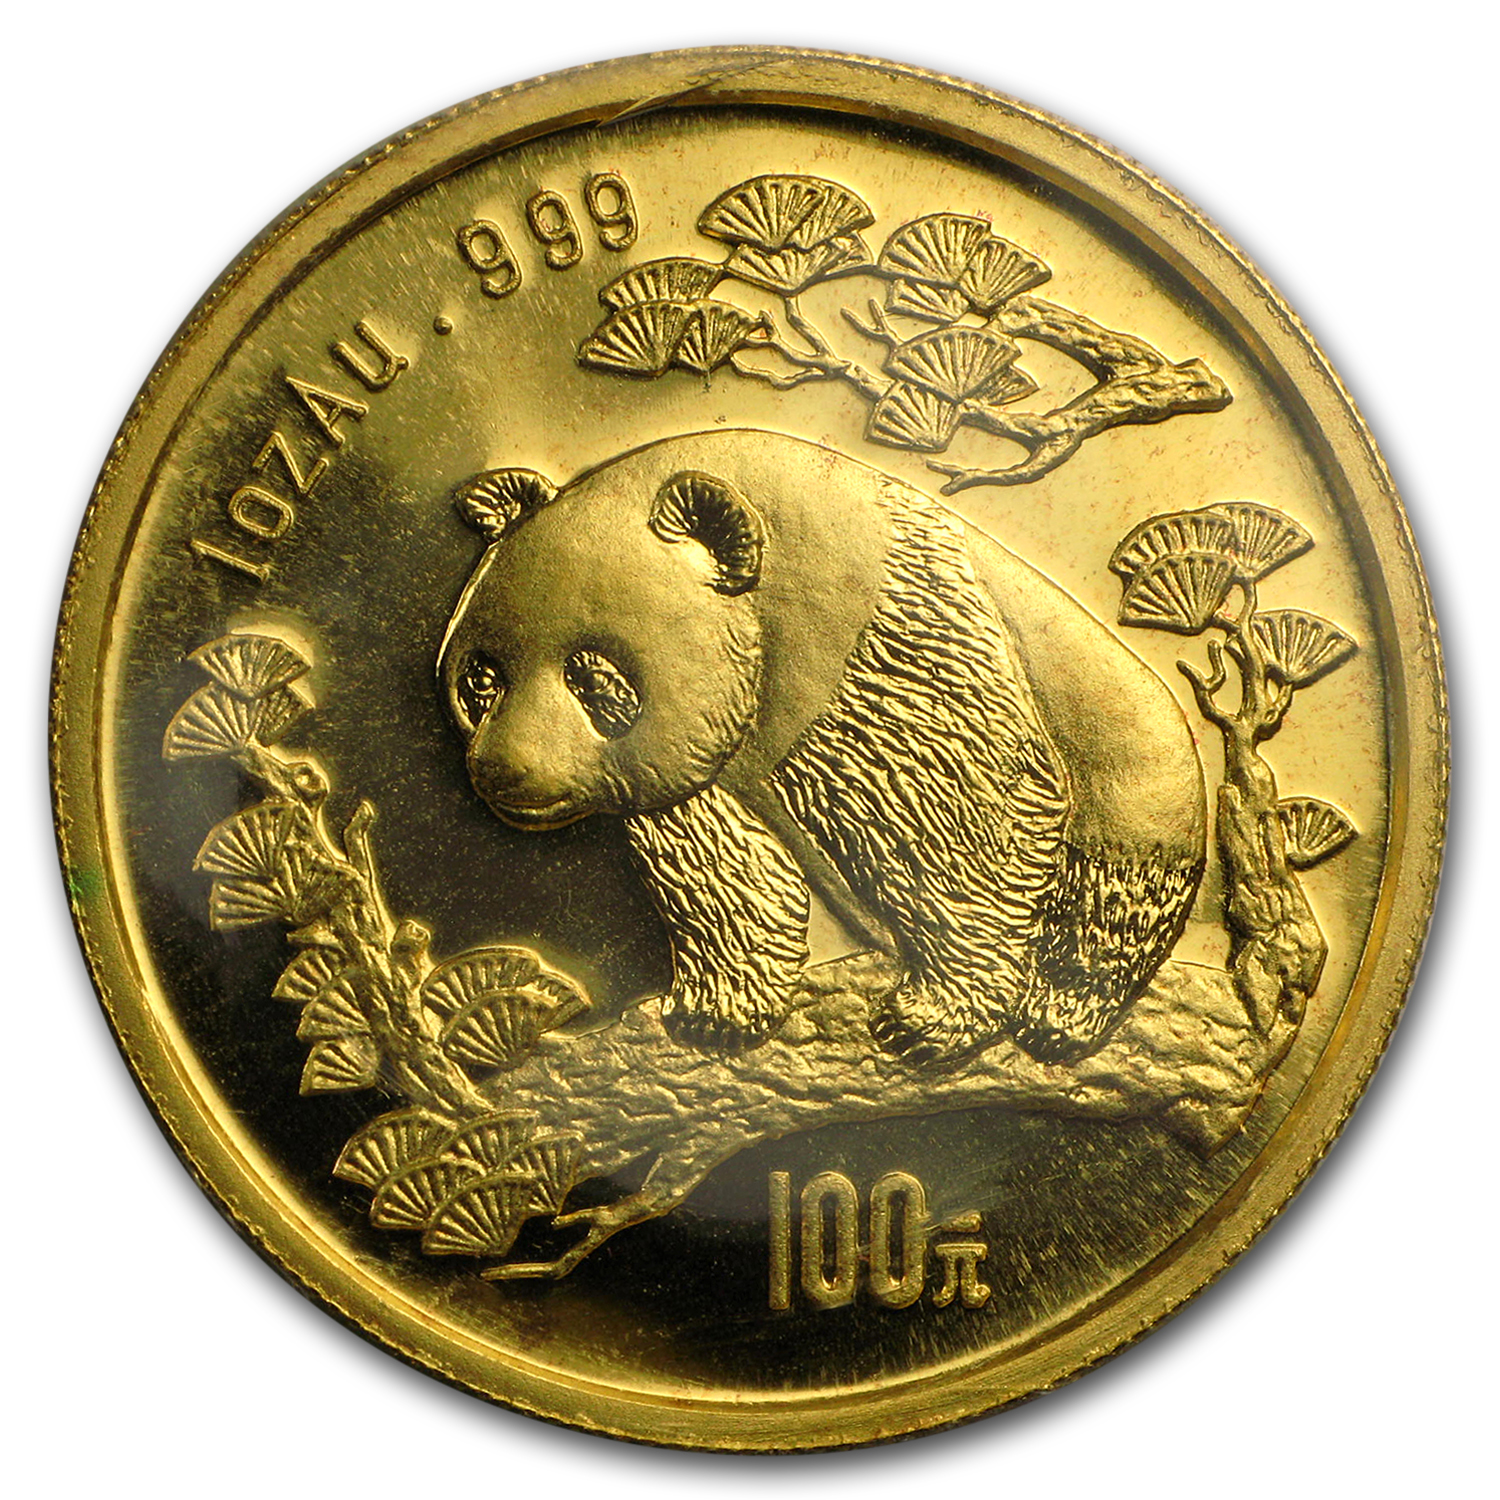 1997 1 oz Gold Chinese Panda Small Date BU (Sealed)